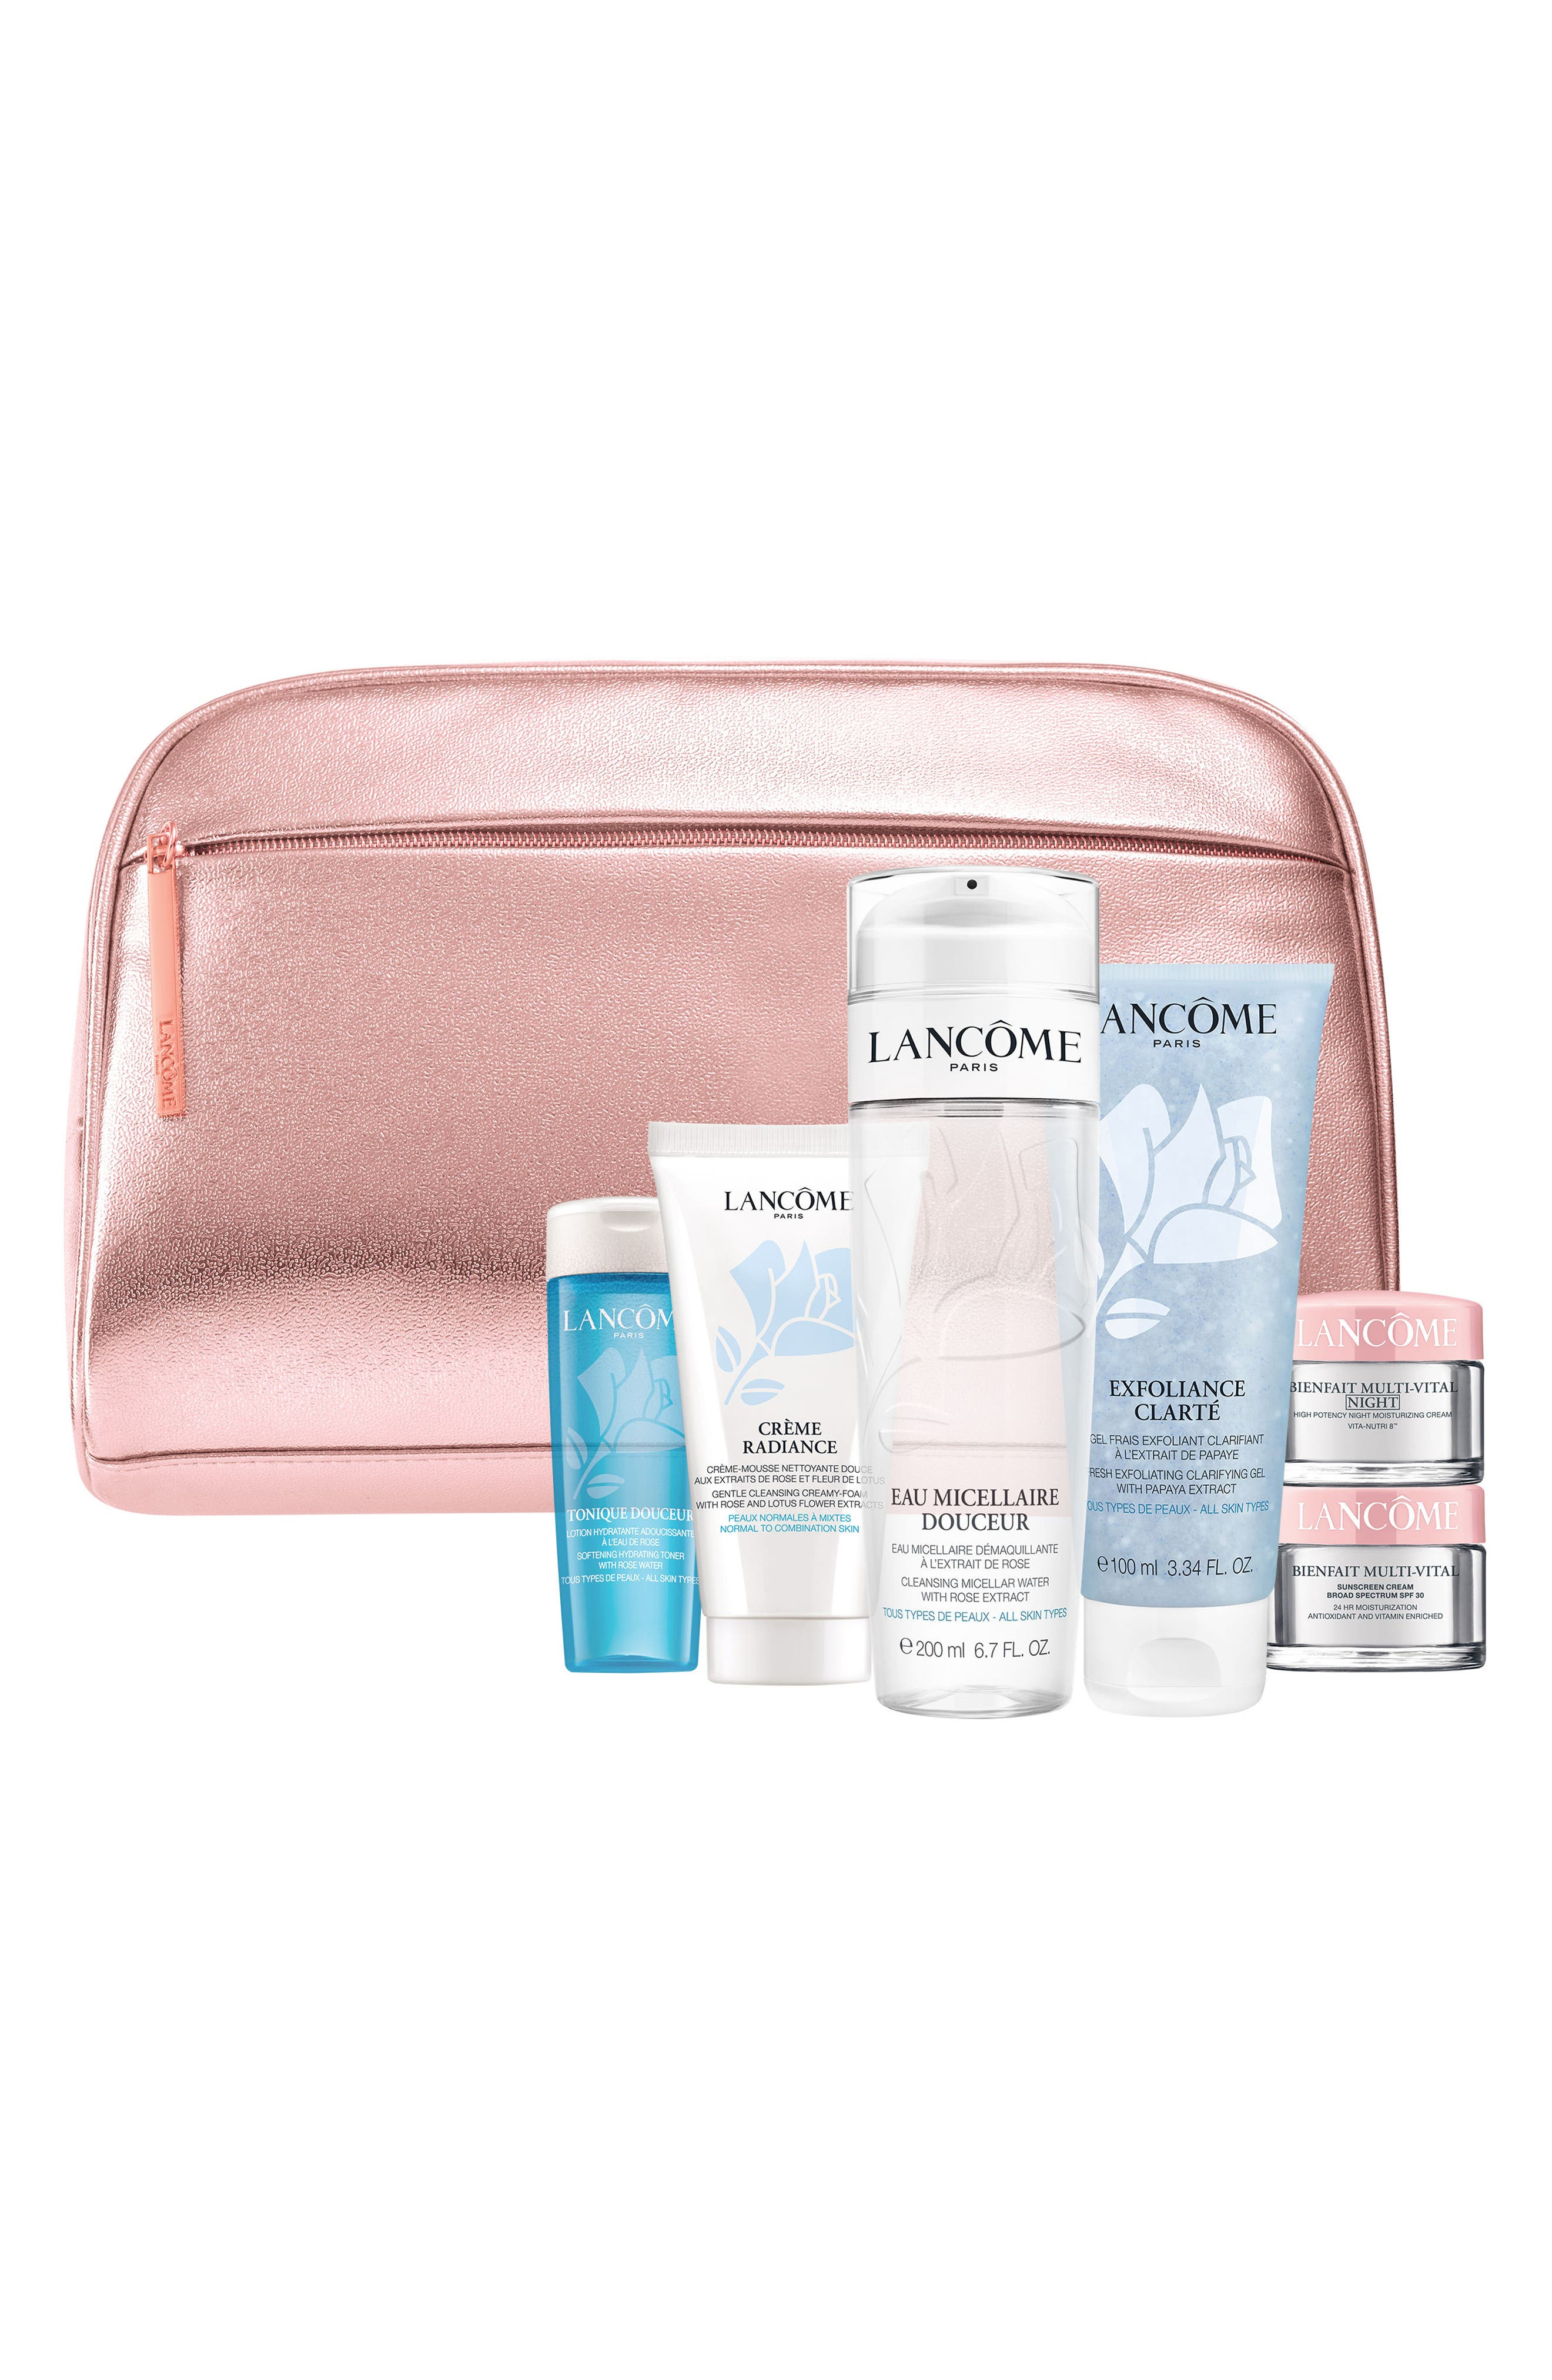 Alternate Image 1 Selected - Lancôme Skin Care Essentials Collection (Purchase with any Lancôme Purchase) ($112 Value)